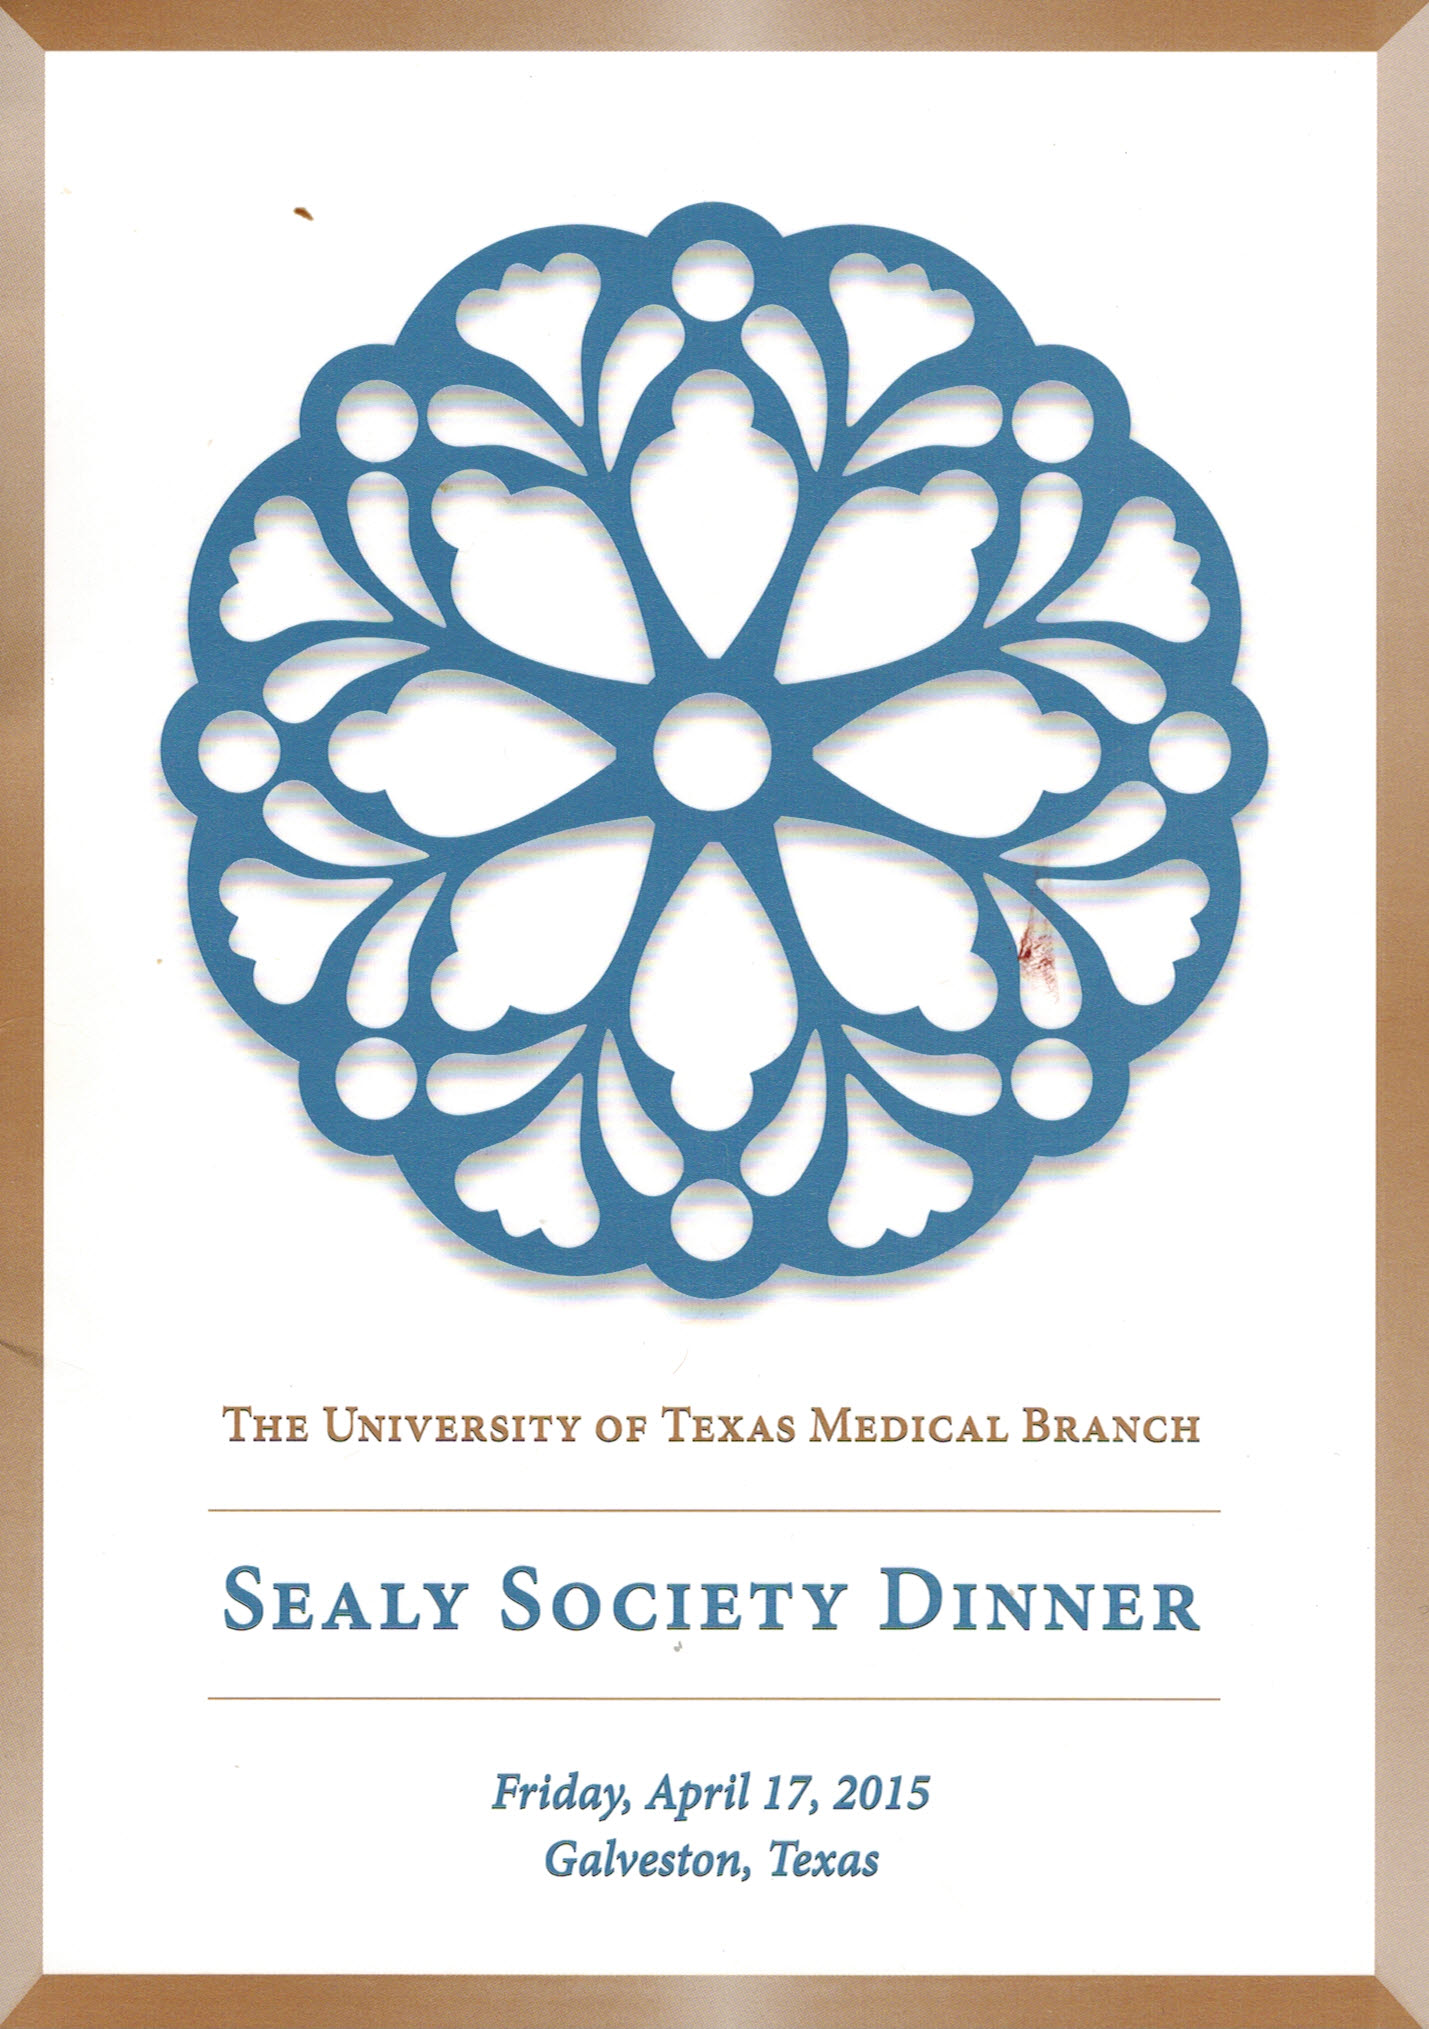 Sealy Society Dinner hosted by the University of Texas